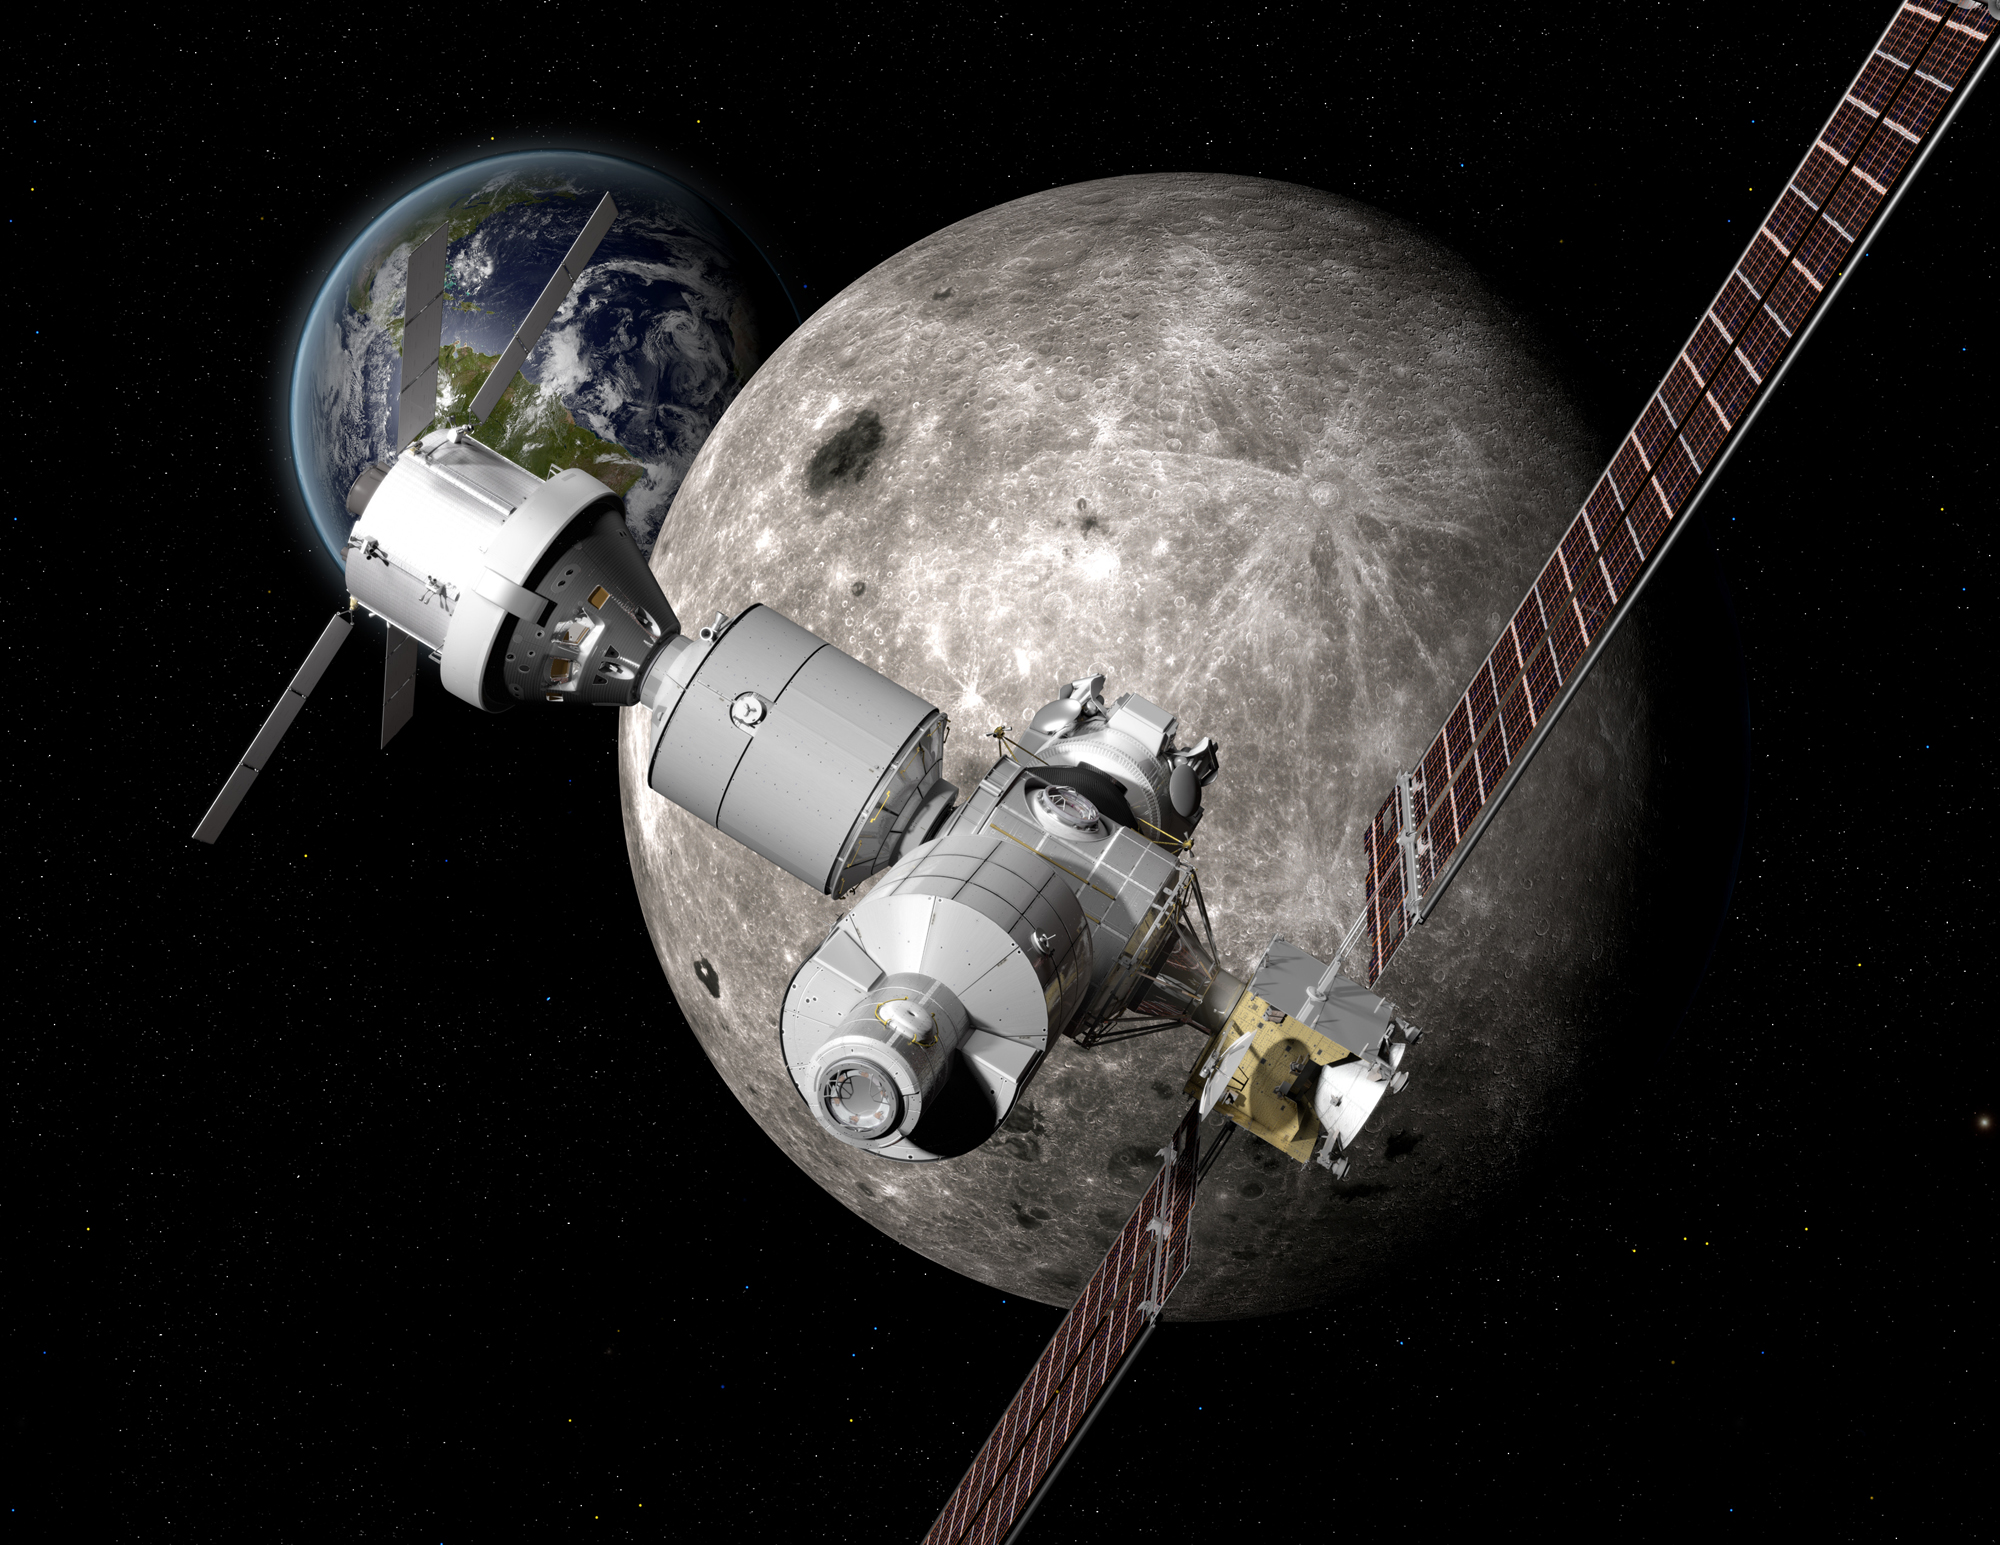 Deep Space Gateway >> Nasa Shapes Science Plan For Deep Space Outpost Near The Moon Space